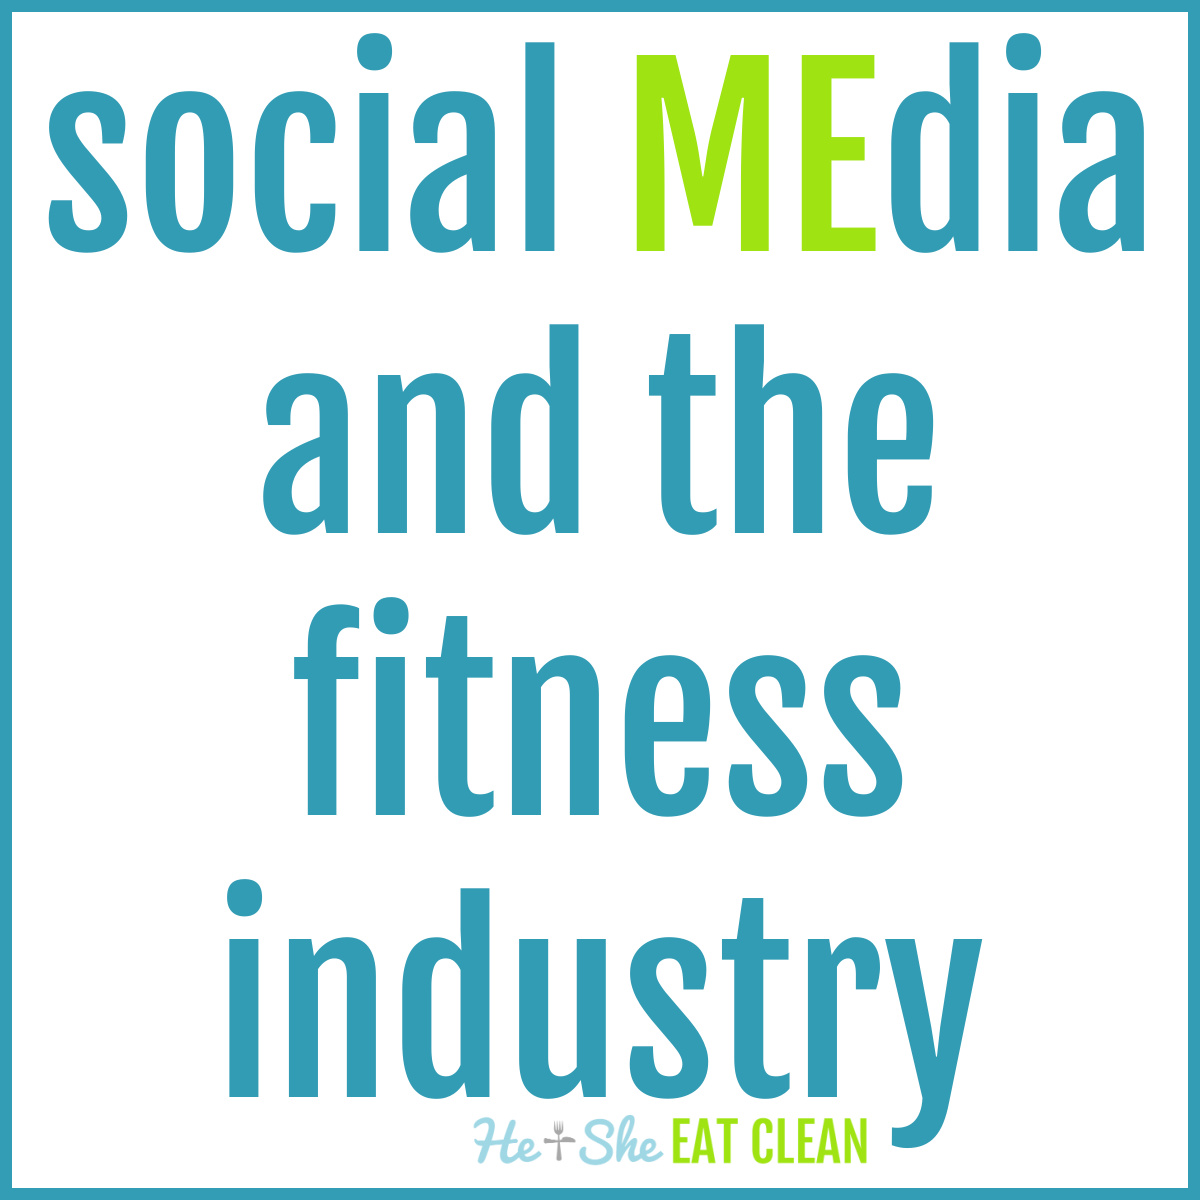 text reads social MEdia and the fitness industry